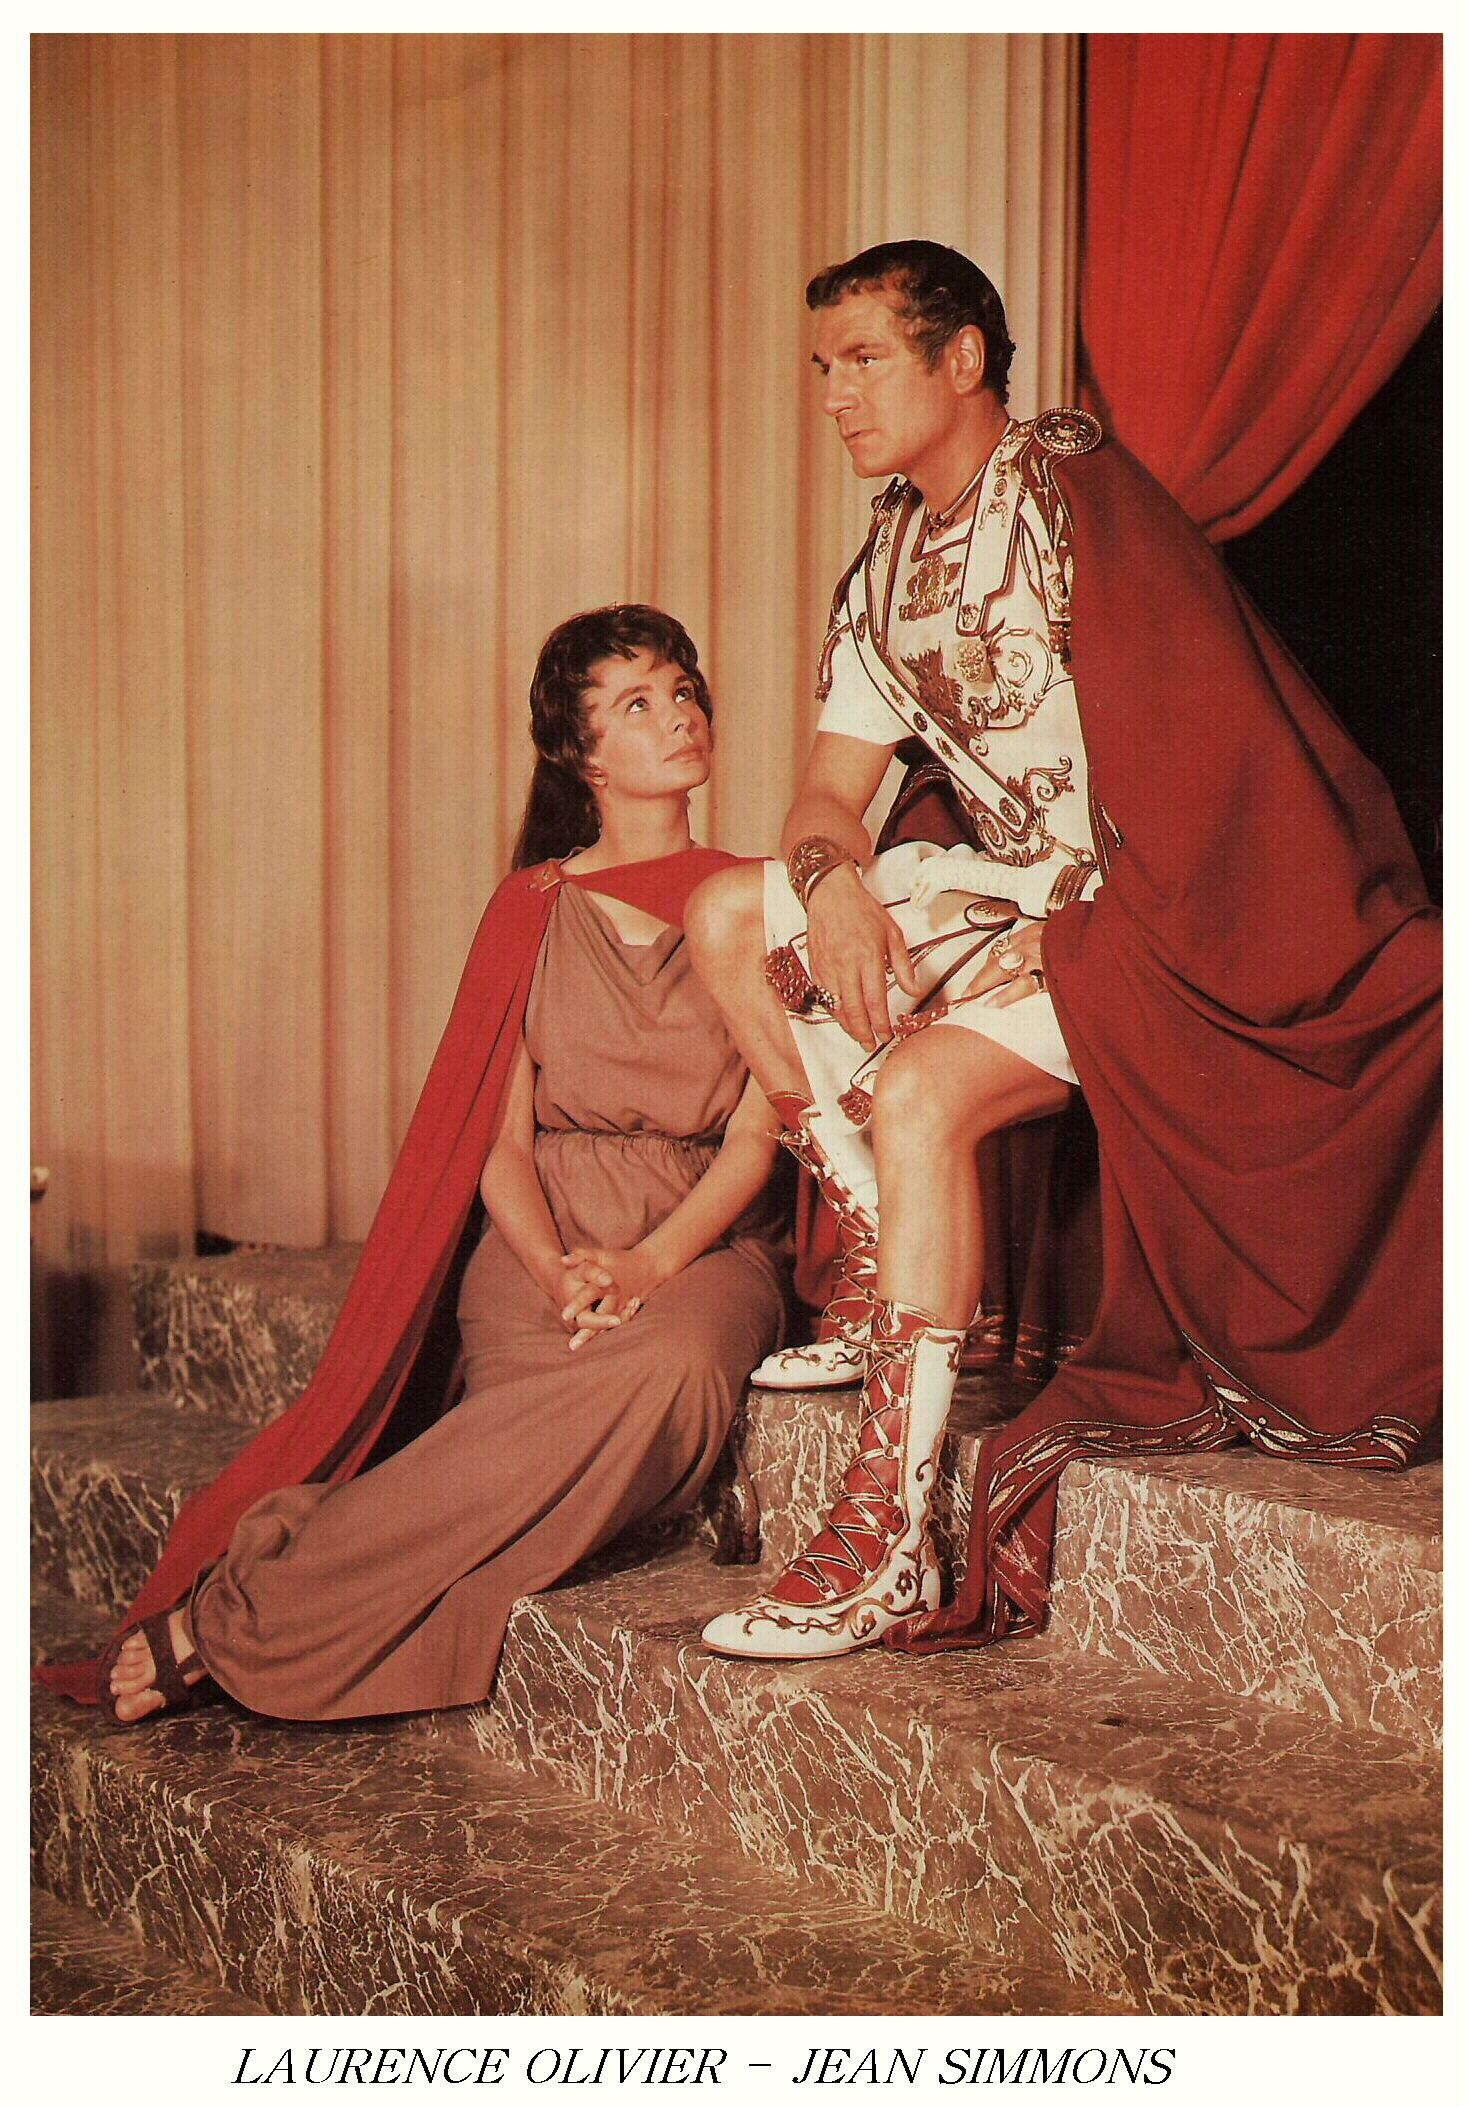 Laurence olivier spartacus quotes - Spartacus 1960 Jean Simmons And Laurence Olivier